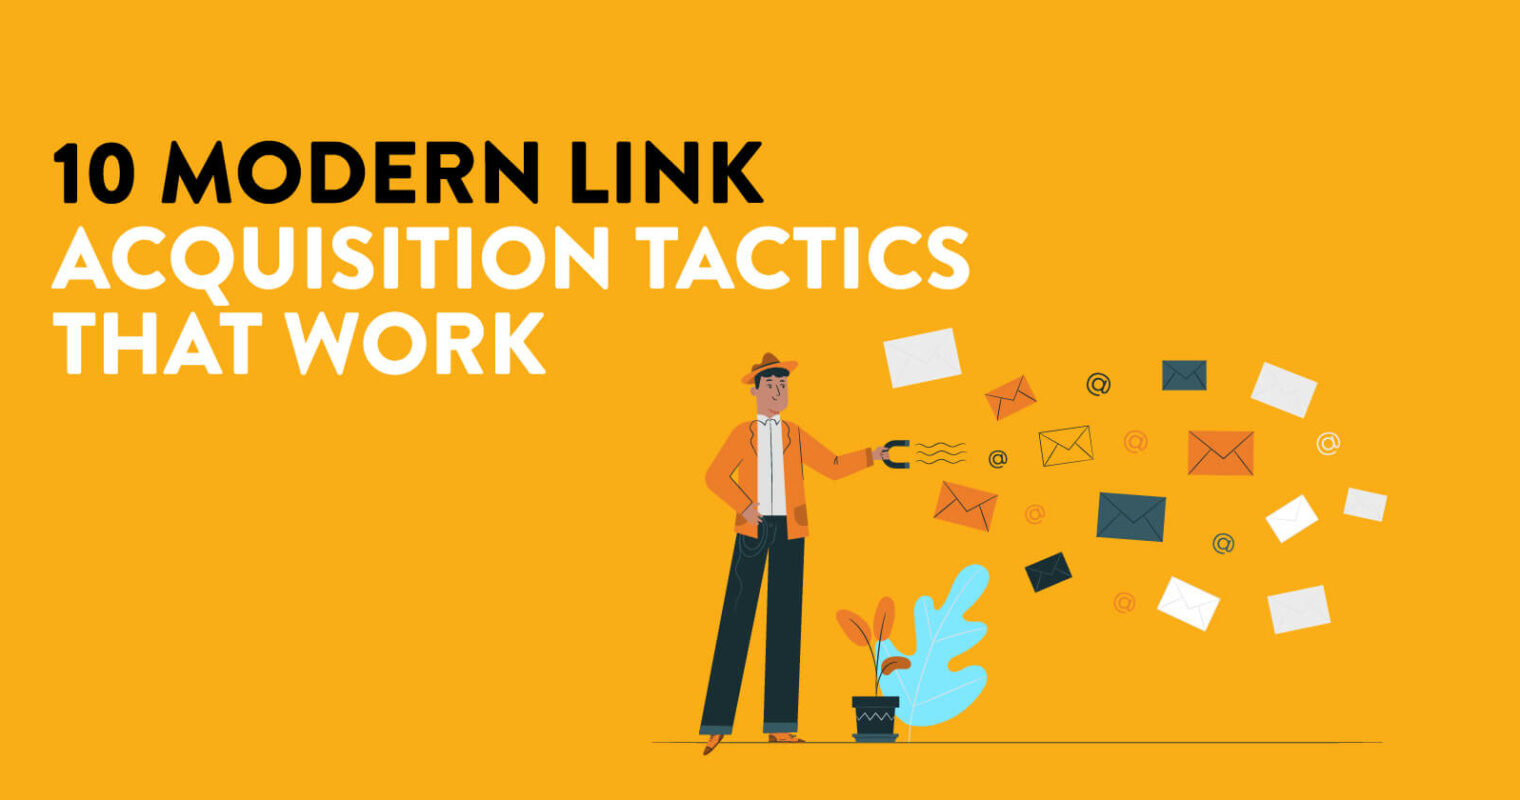 10 Modern Link Acquisition Tactics That Work